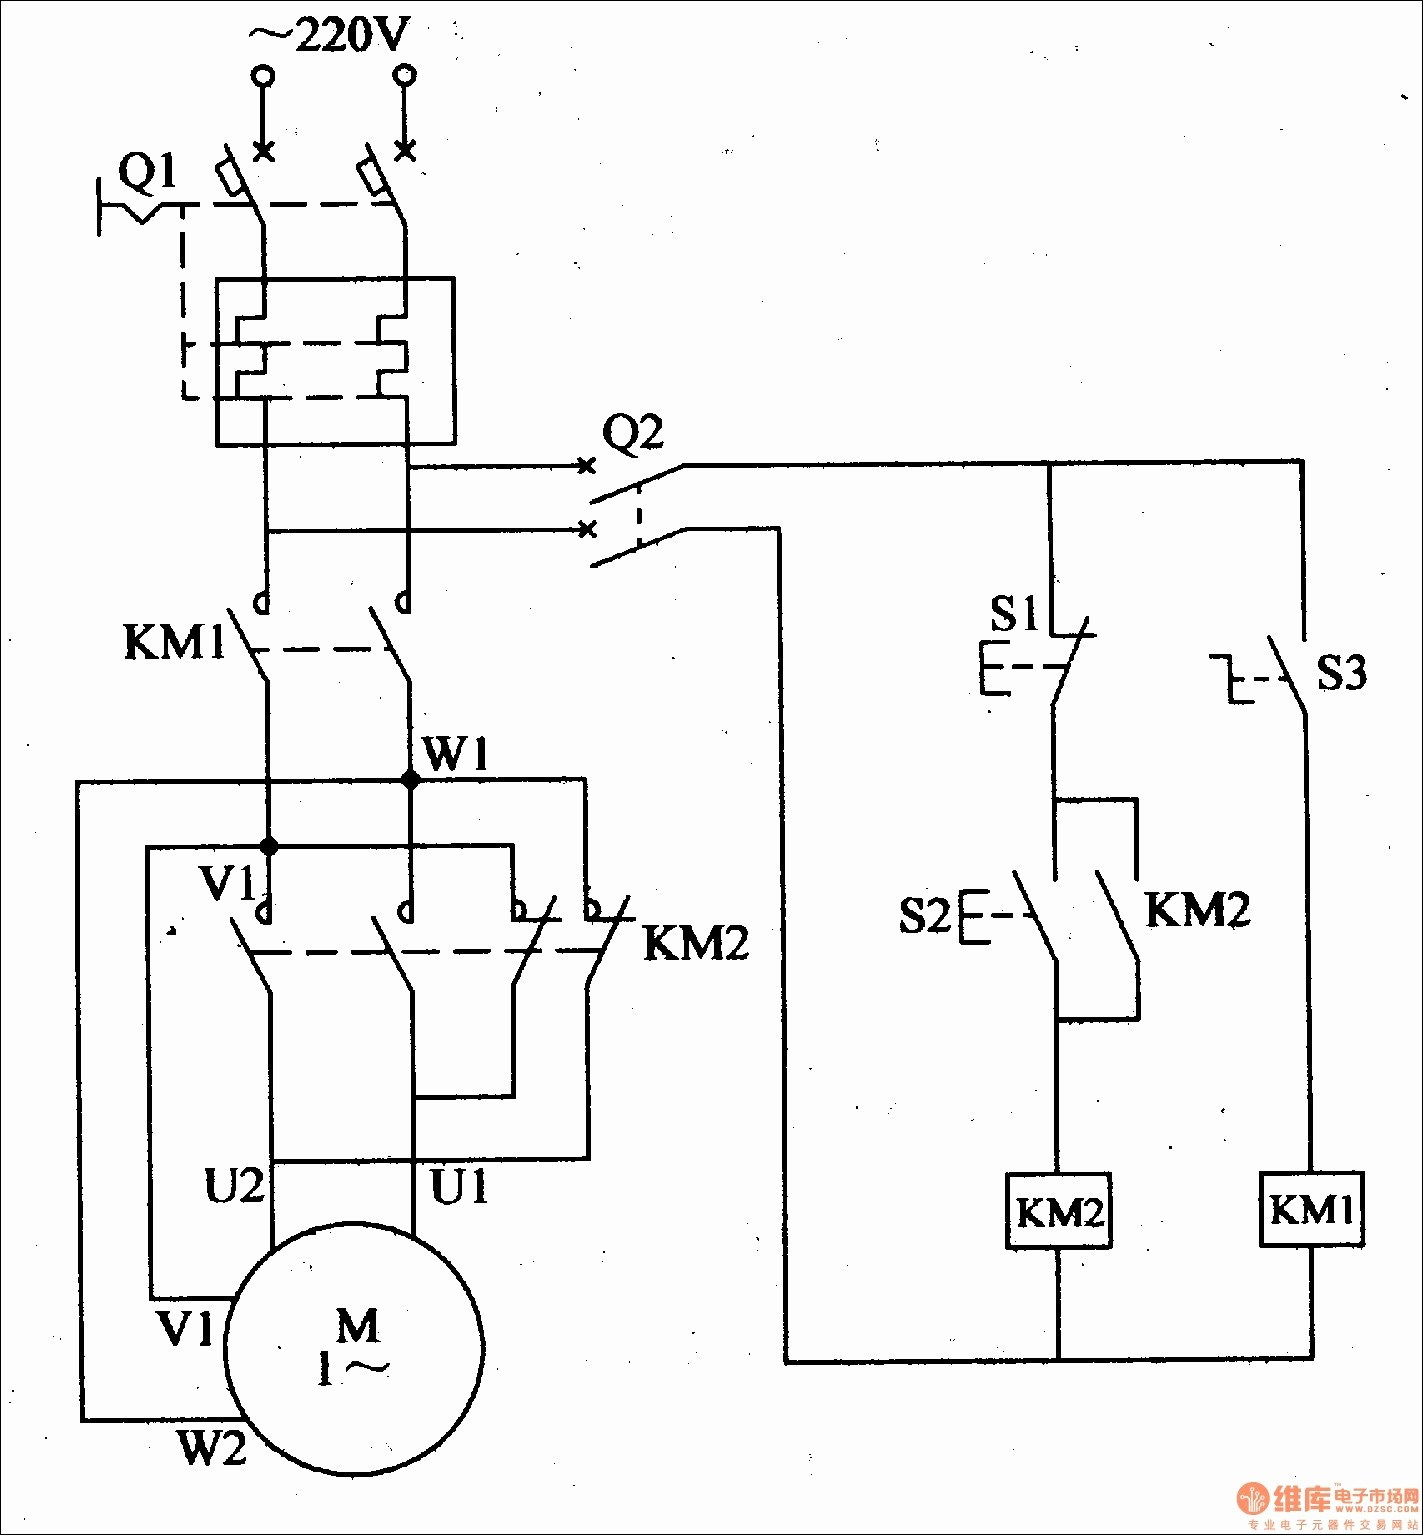 Railex Wiring Diagrams Single Phase Motor Forward And Reverse - Reversing Single Phase Motor Wiring Diagram